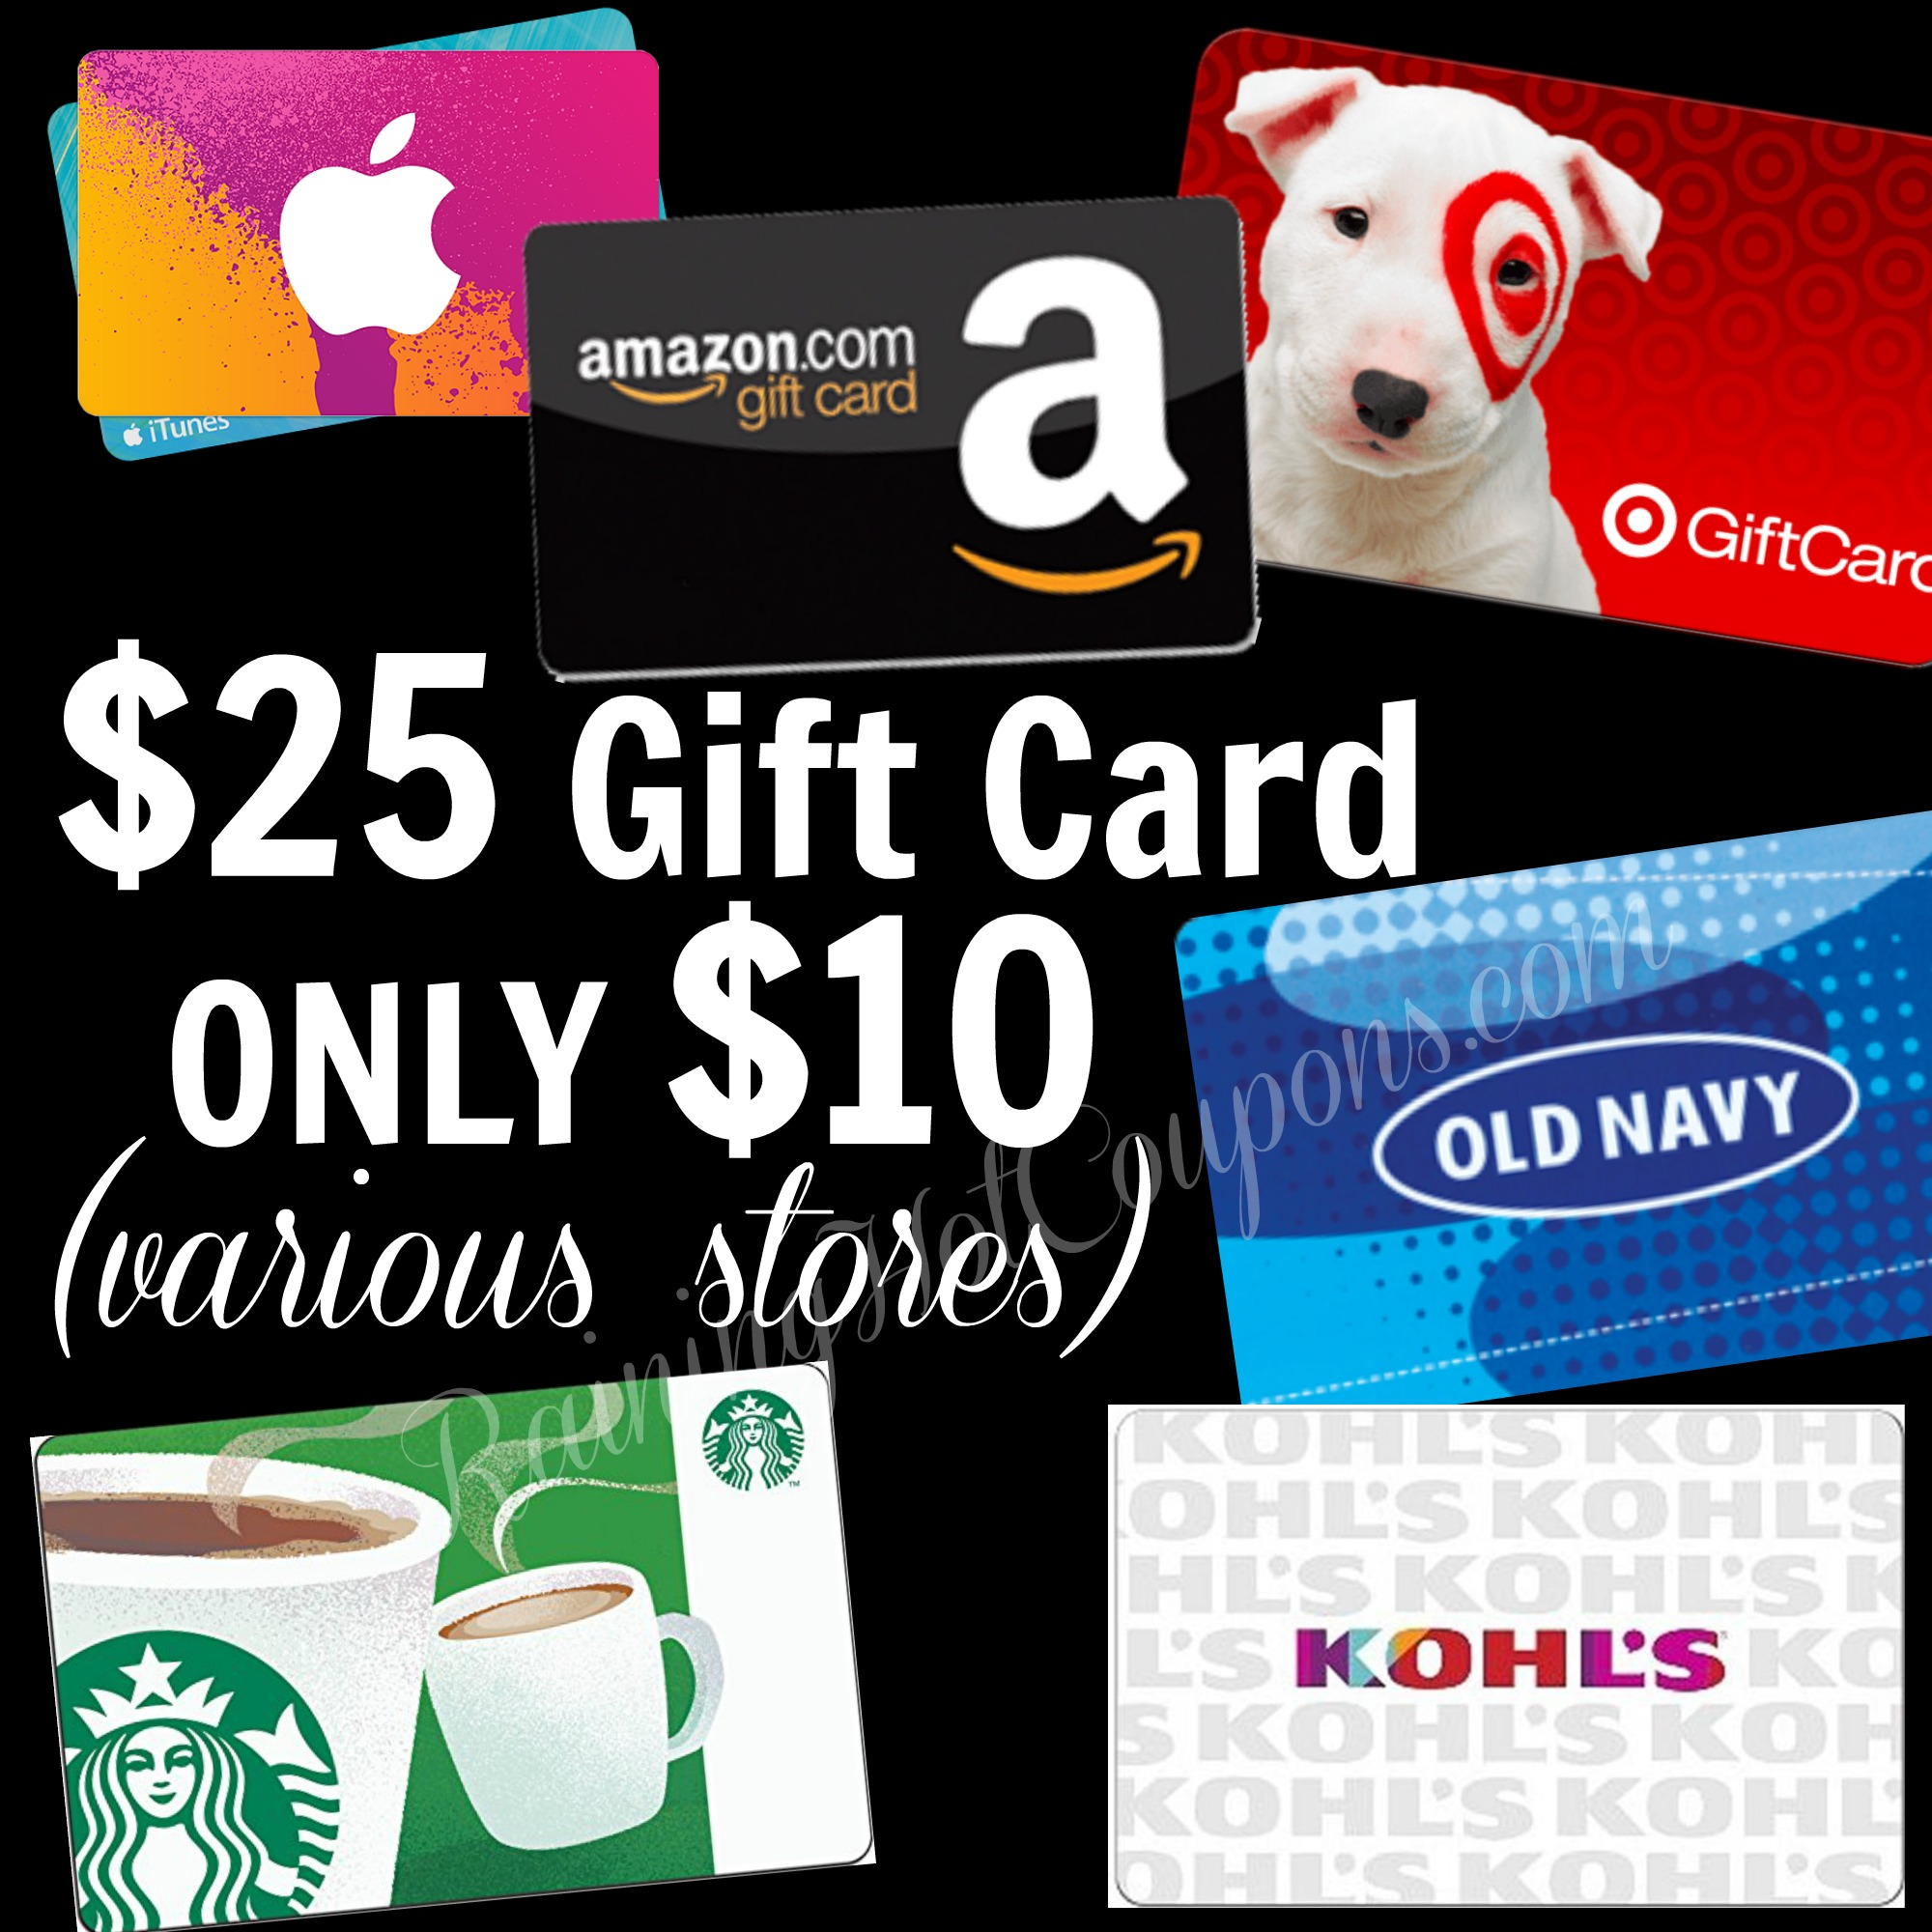 HOT* $10 for a $25 Target, Starbucks, Walmart, Amazon and